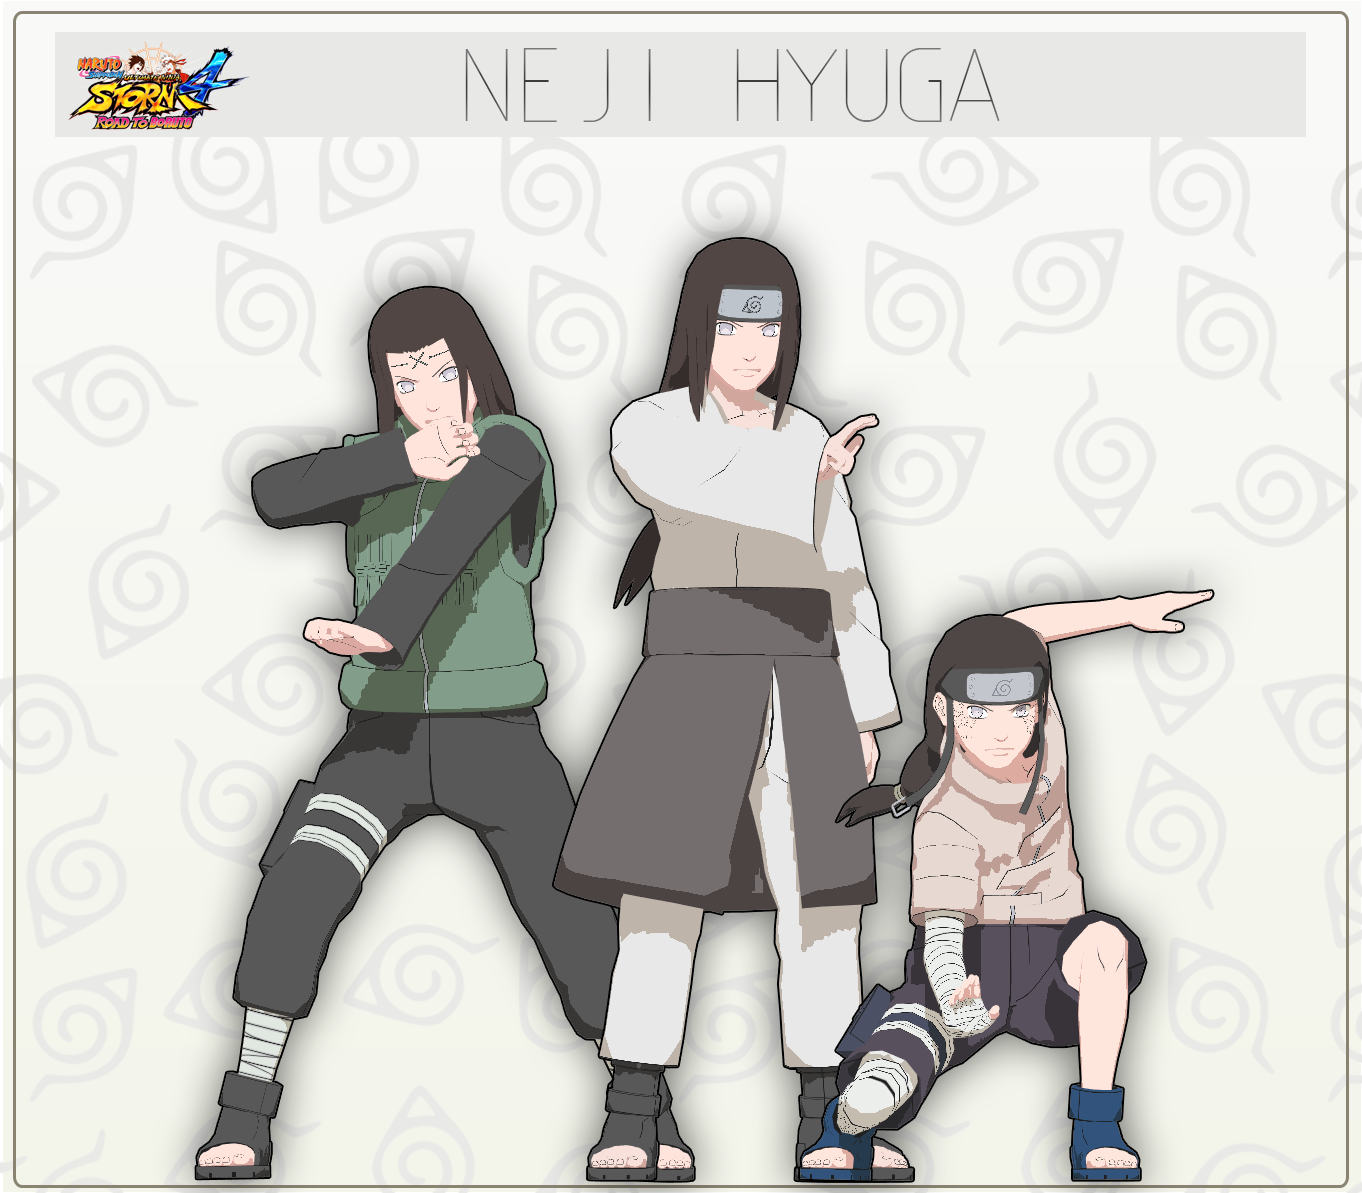 MMD Neji Hyuga Pack + DL by NaraShadows on DeviantArt